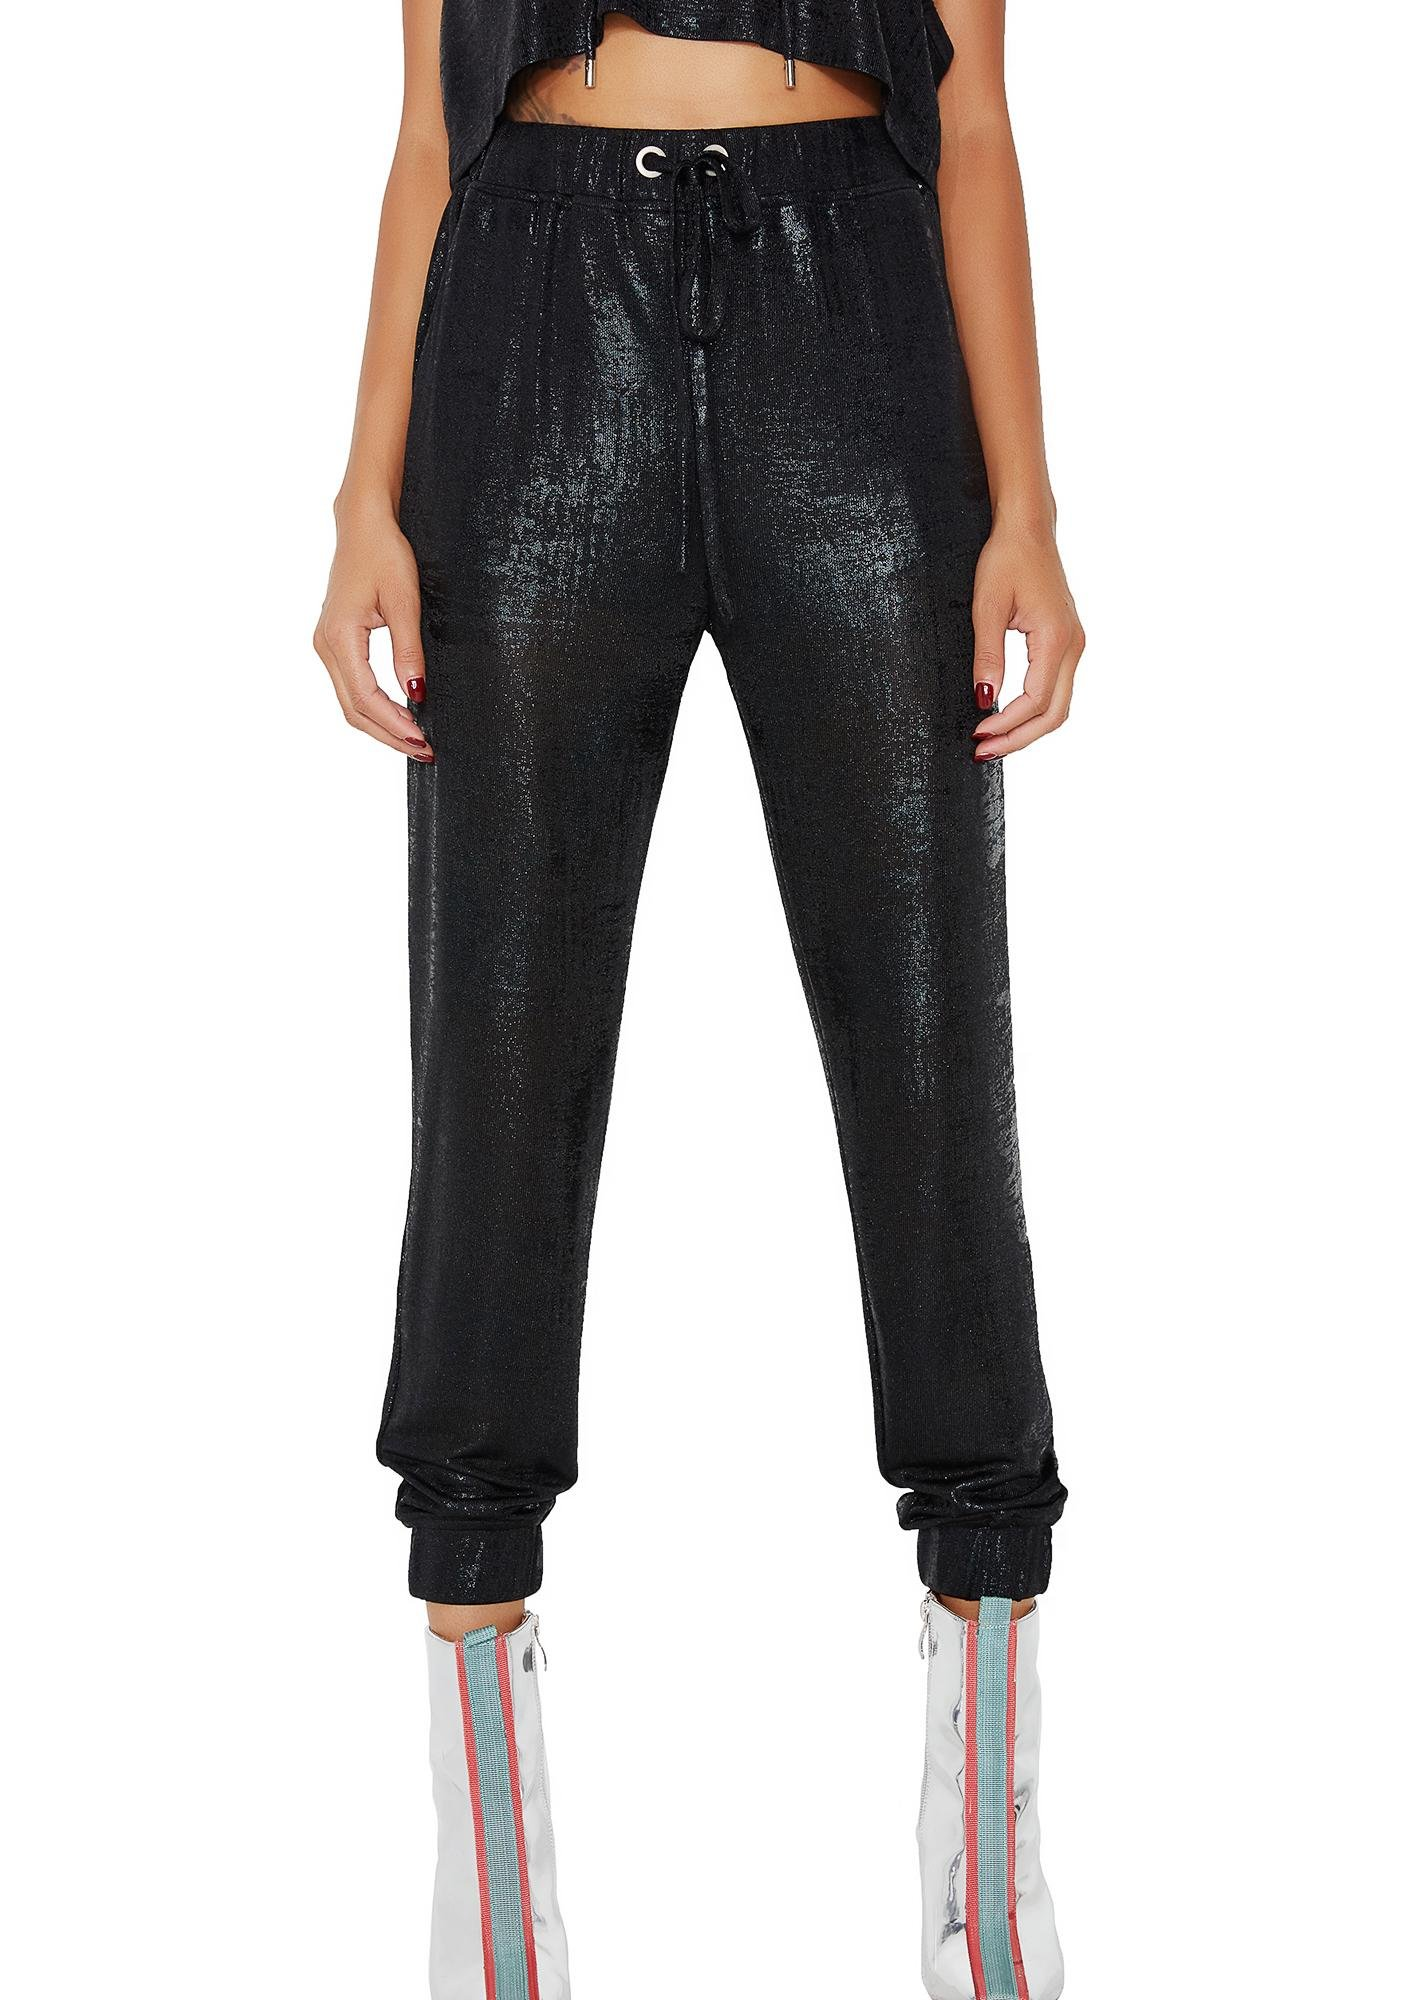 Onyx Got To Shine Metallic Joggers